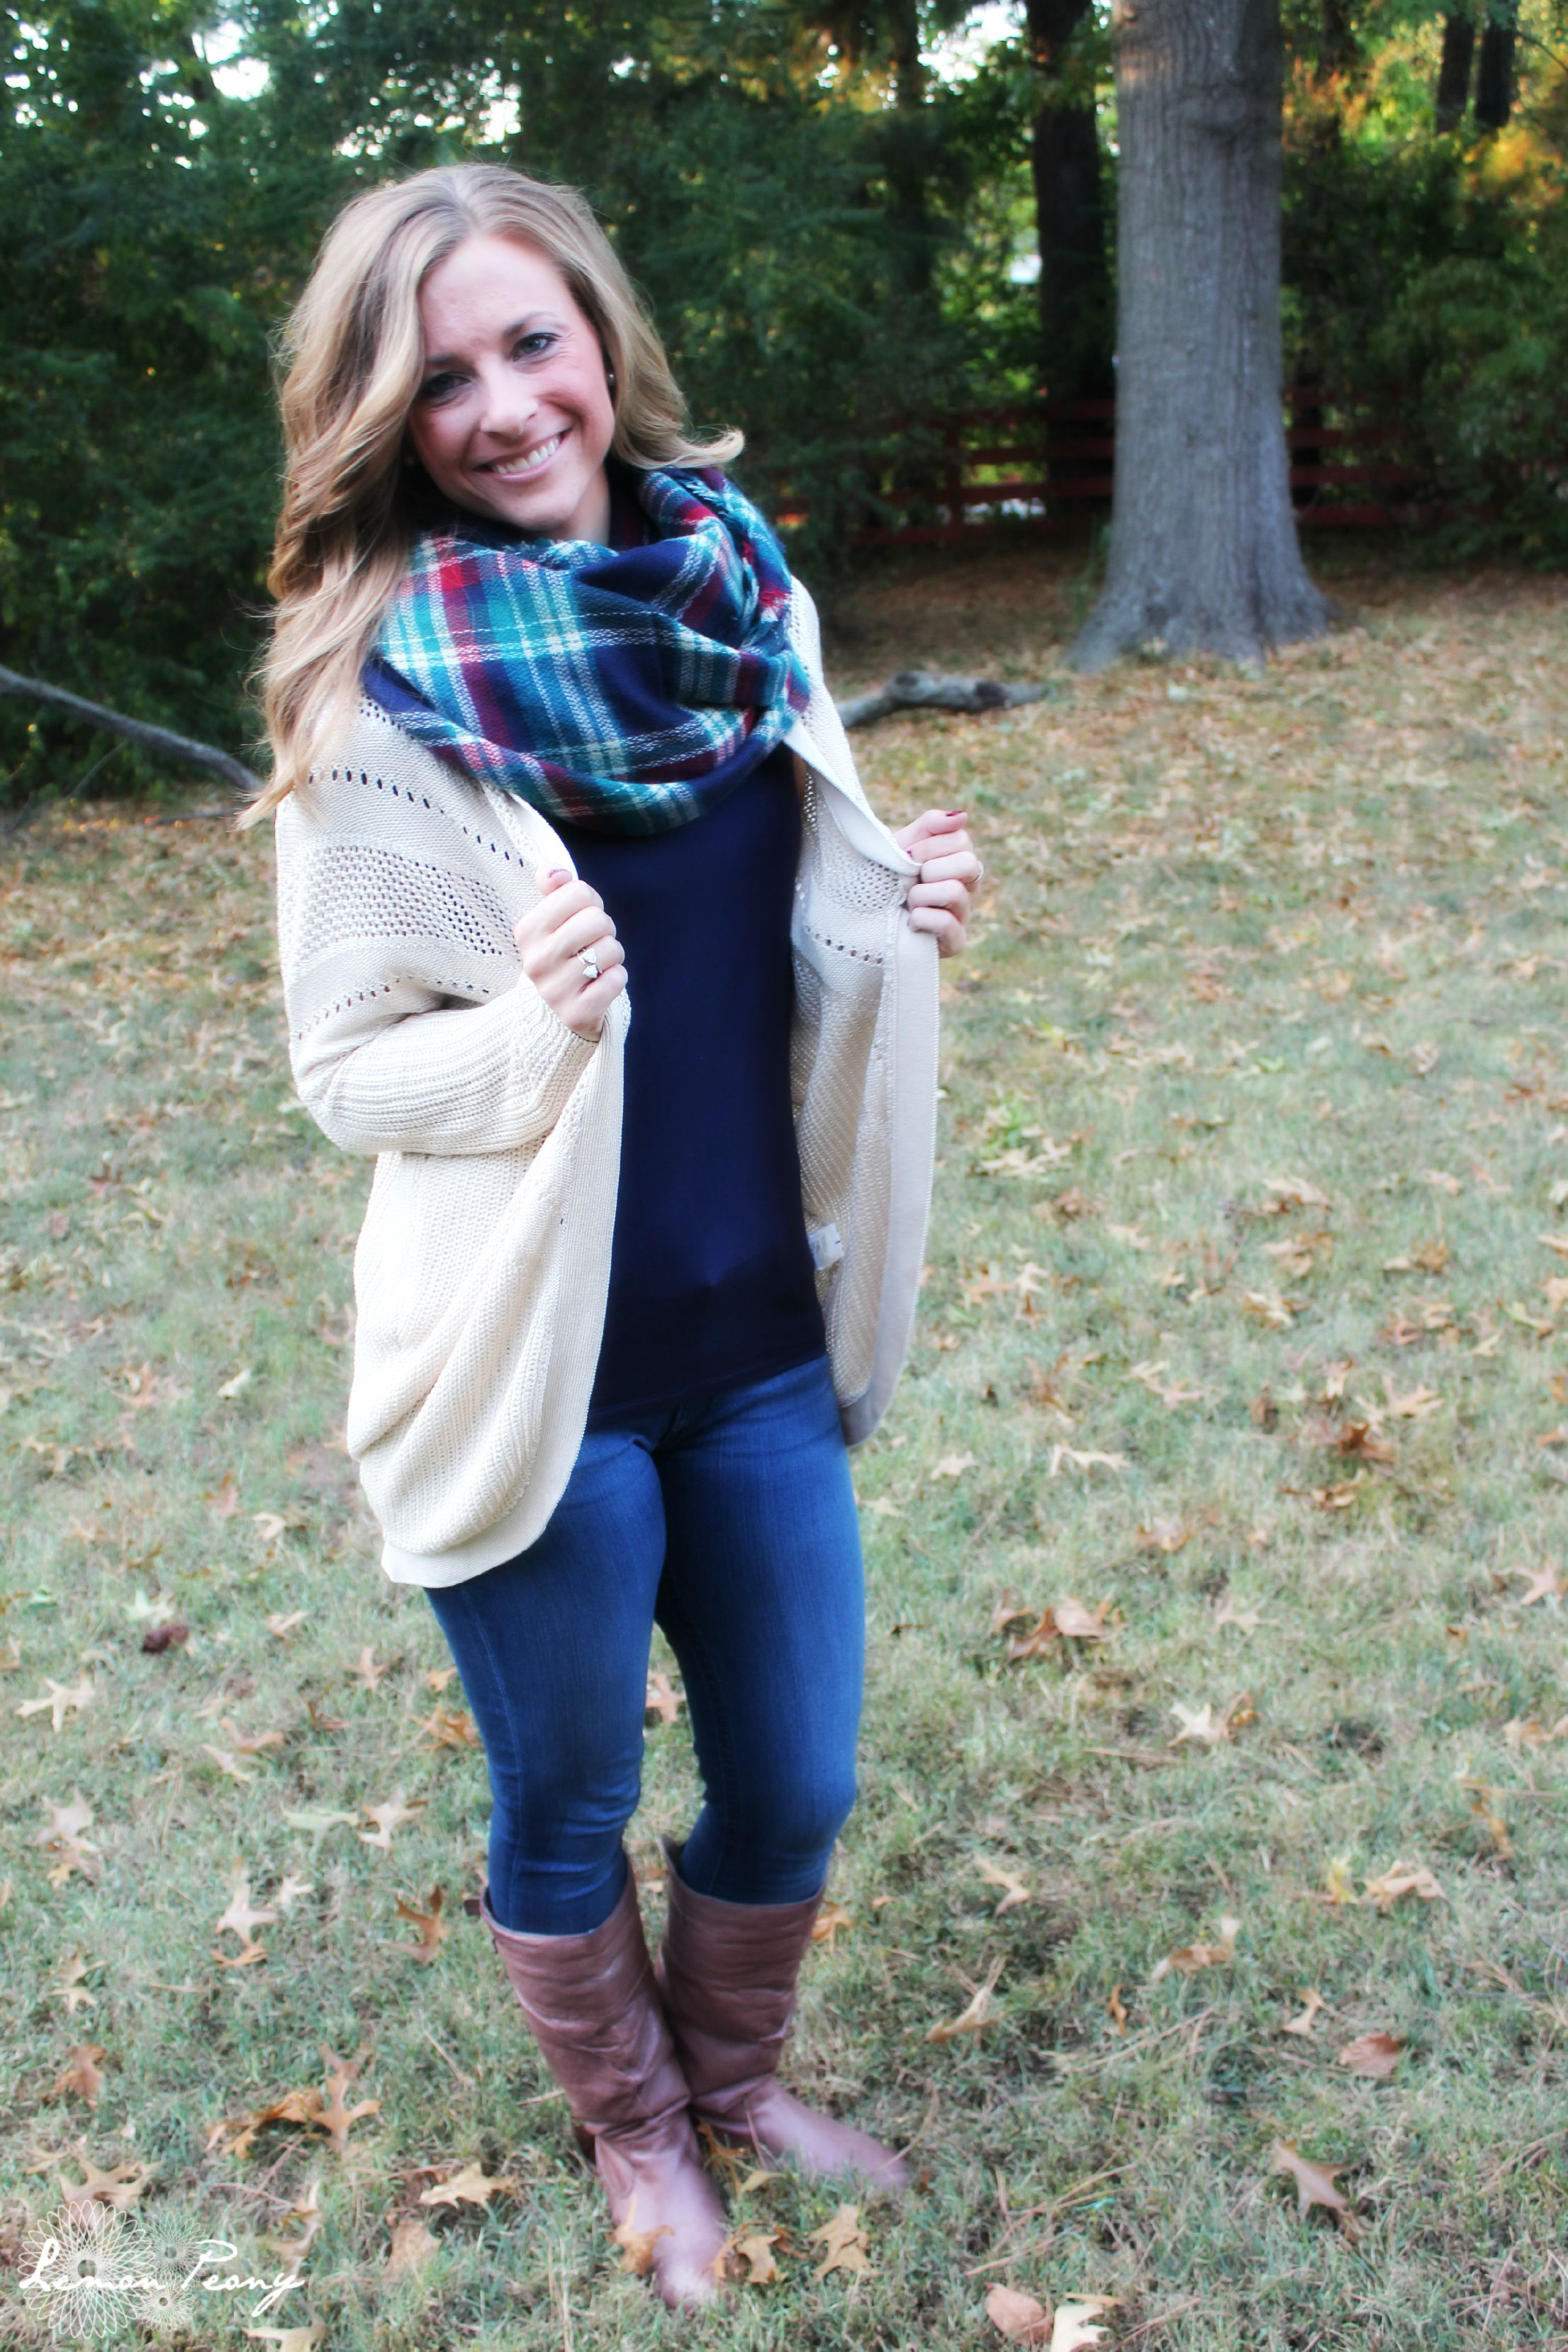 Oversized Sweater Jacket, Tee, Tall Boots, & Plaid Scarf! How to Wear Plaid 5 Ways with 5 Outfits for Fall and Winter!